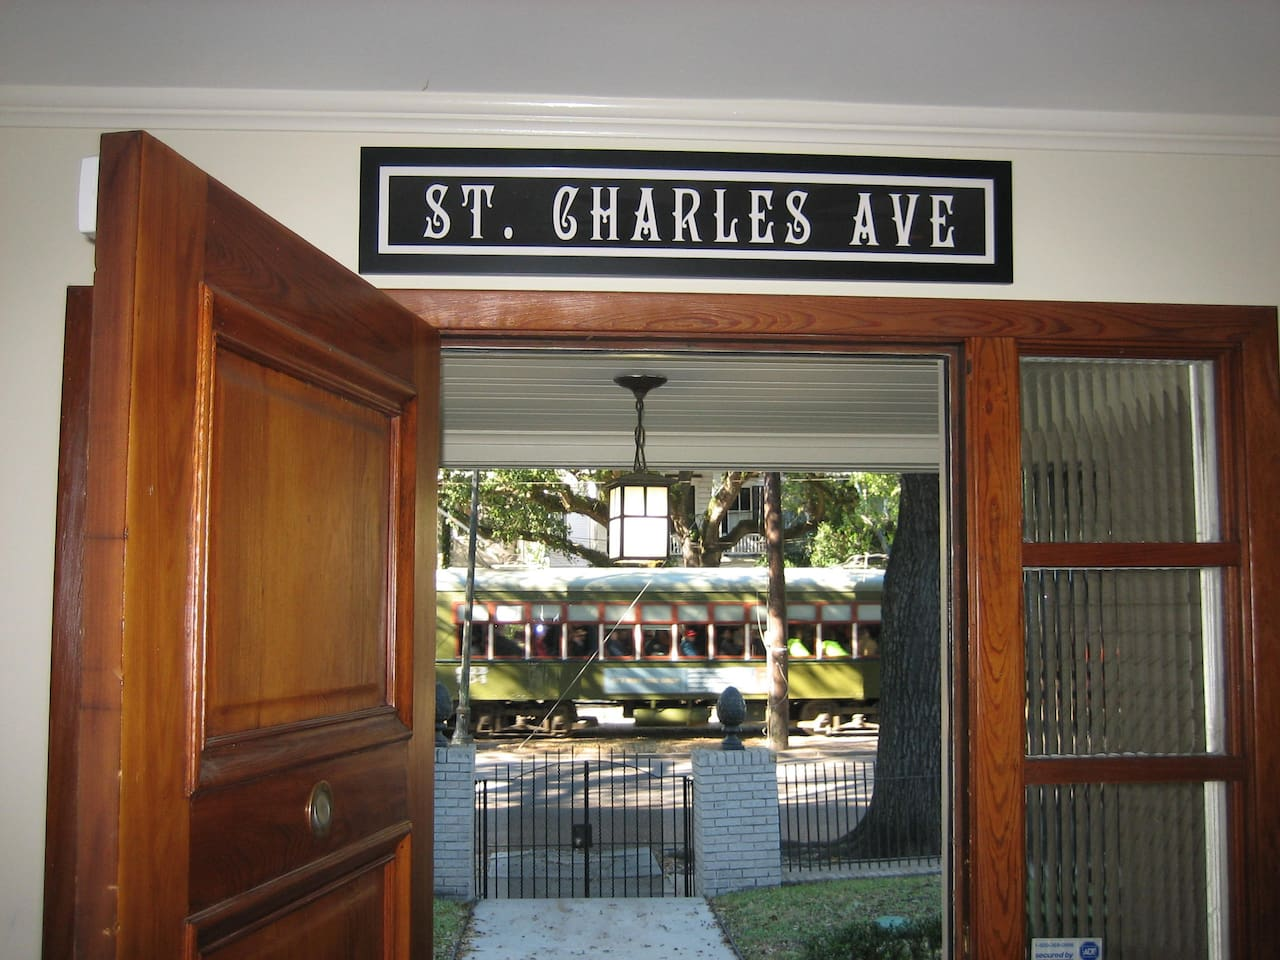 World Famous St. Charles Ave. Street car passes in front